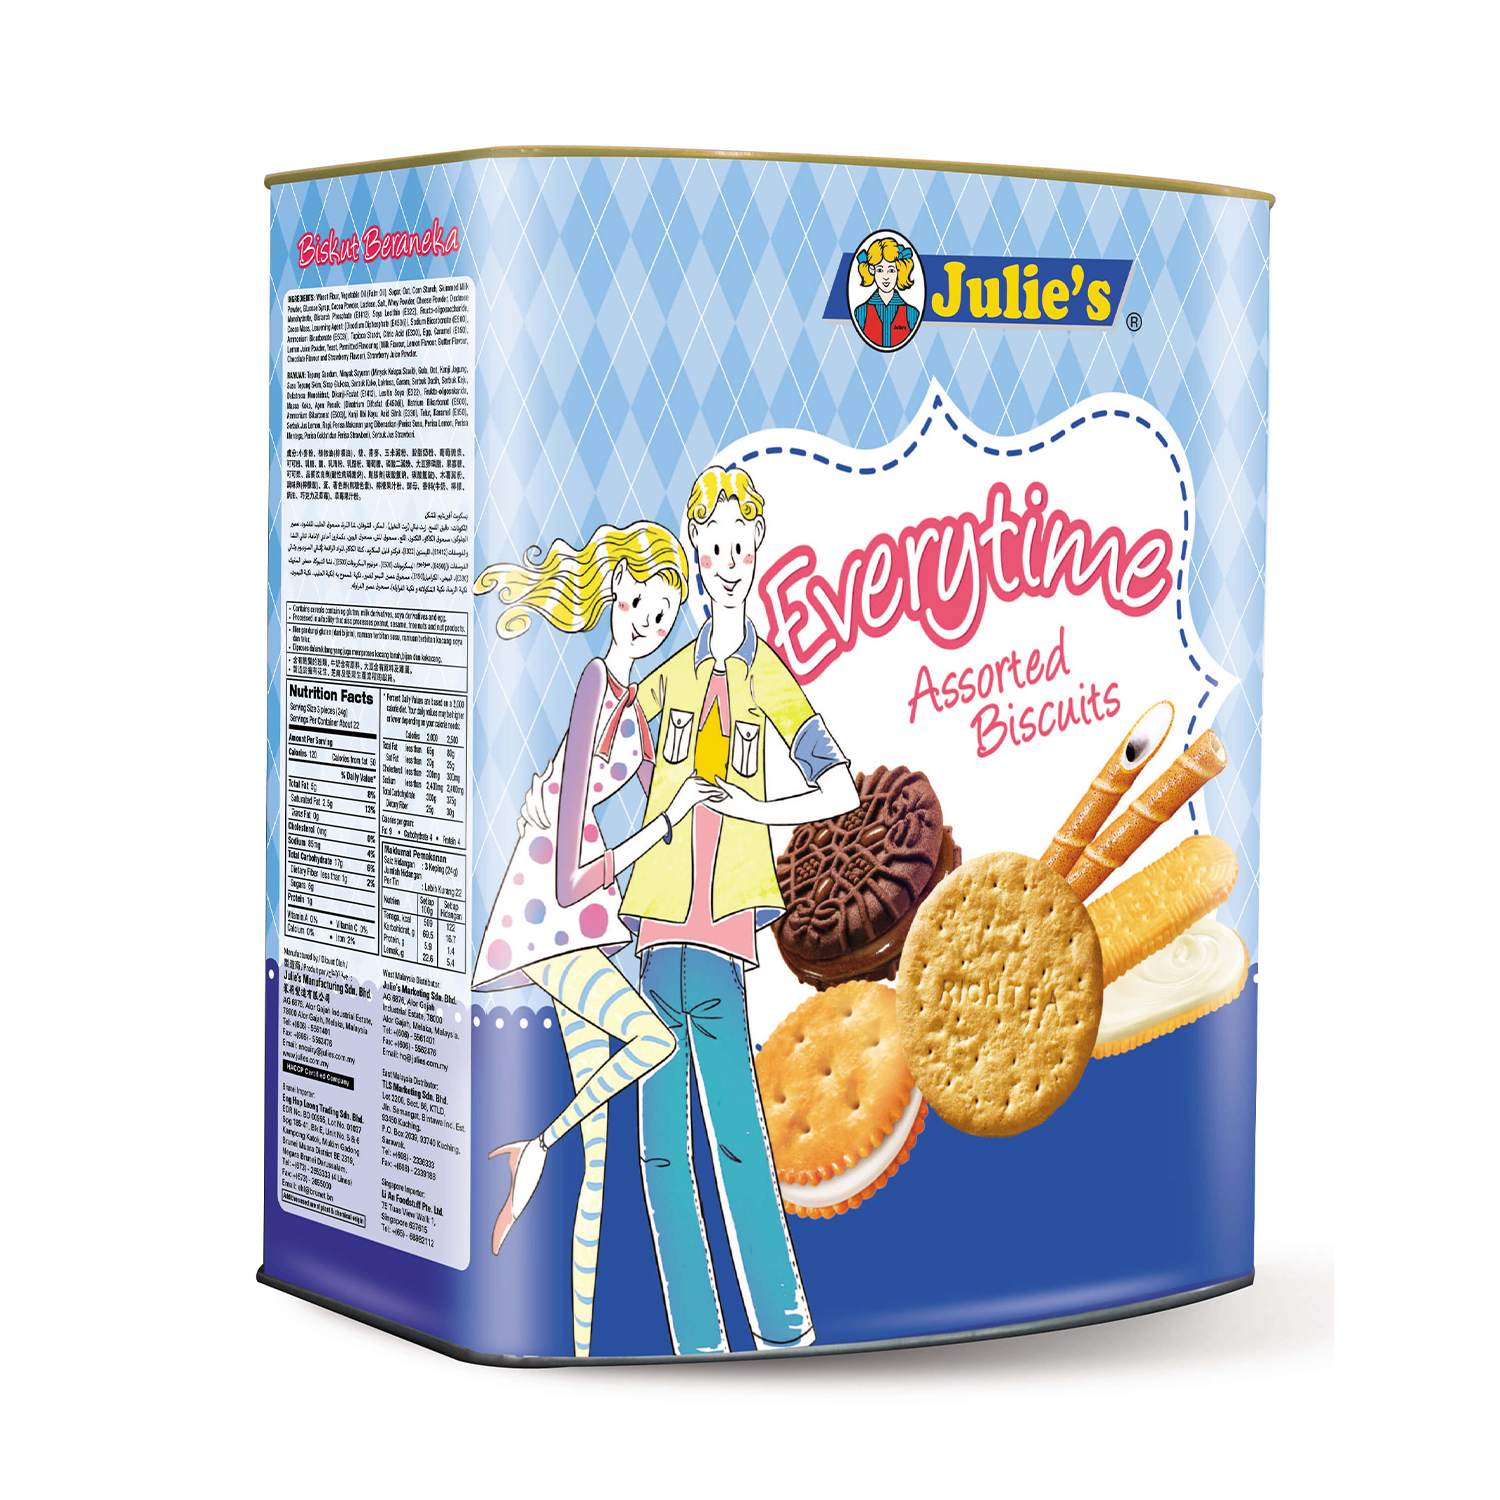 Julie'S Everytime Assorted Biscuits 530G